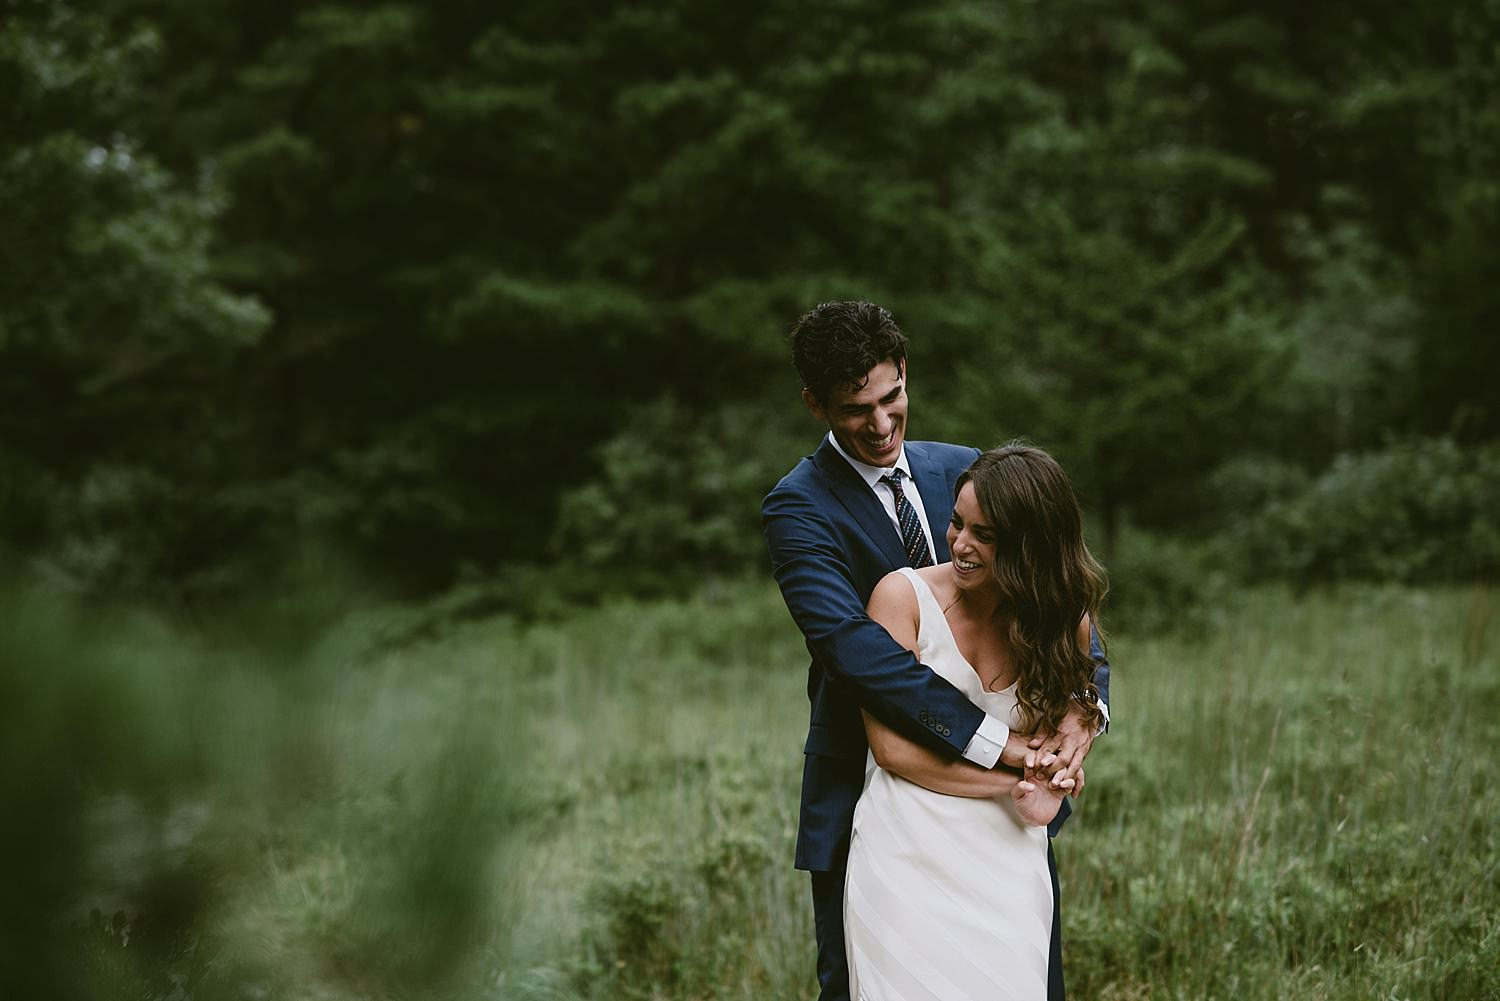 Groom embracing bride